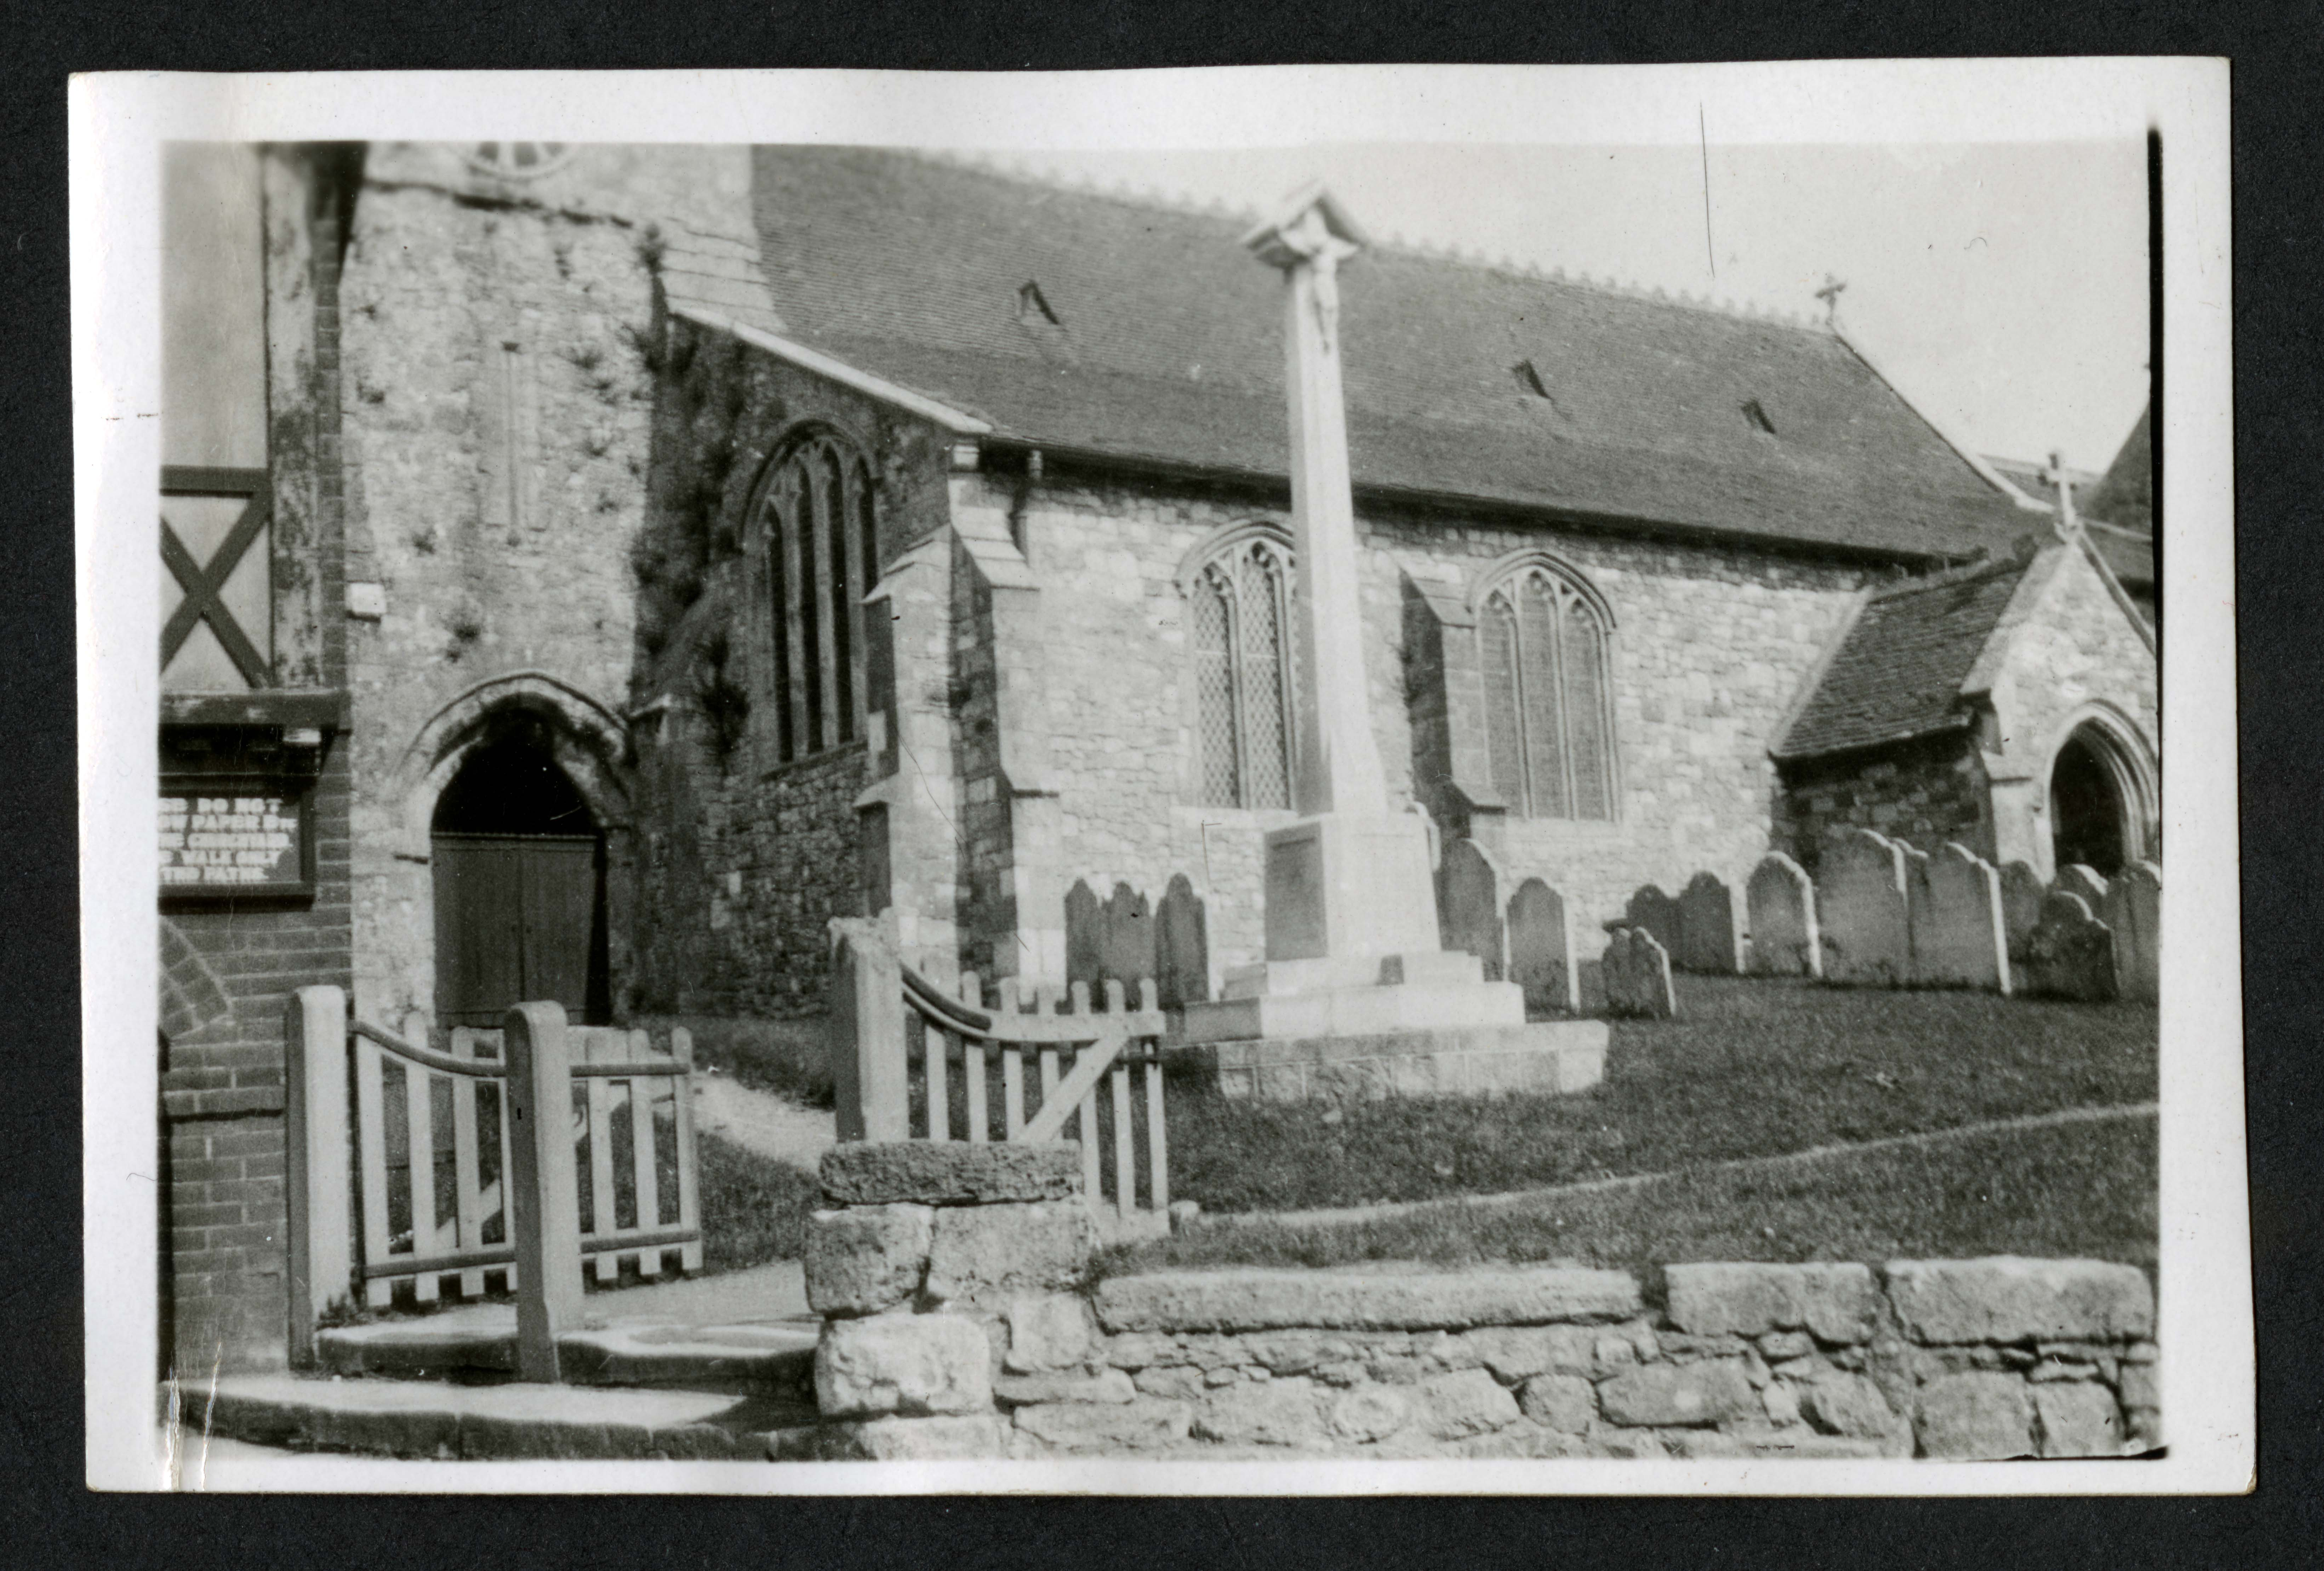 Church and graveyards, Record Unit 7091: Science Service, Records, circa 1910-1963, Smithsonian Institution Archives, image no. SIA2015-003209.